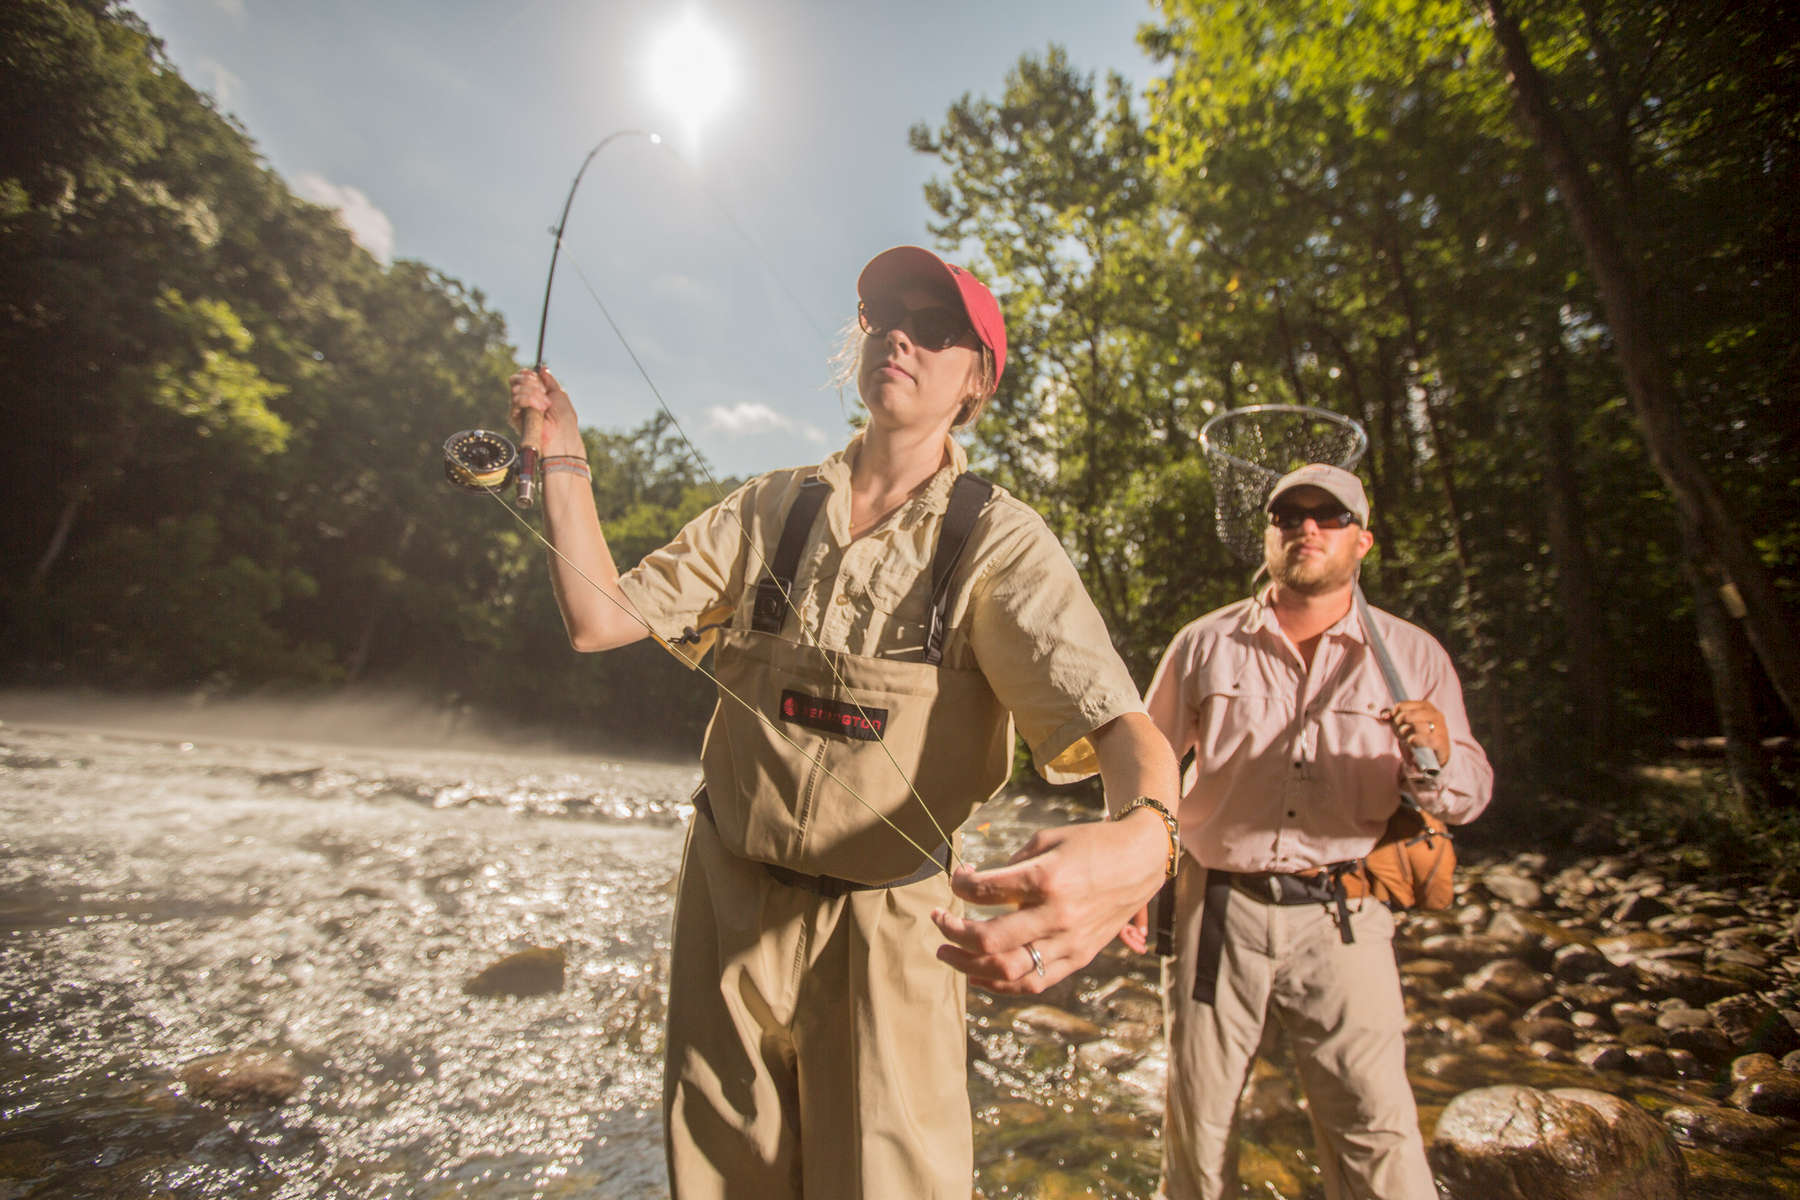 dean-roanoke-virginia-photographer-director-trout-flyfishing-5